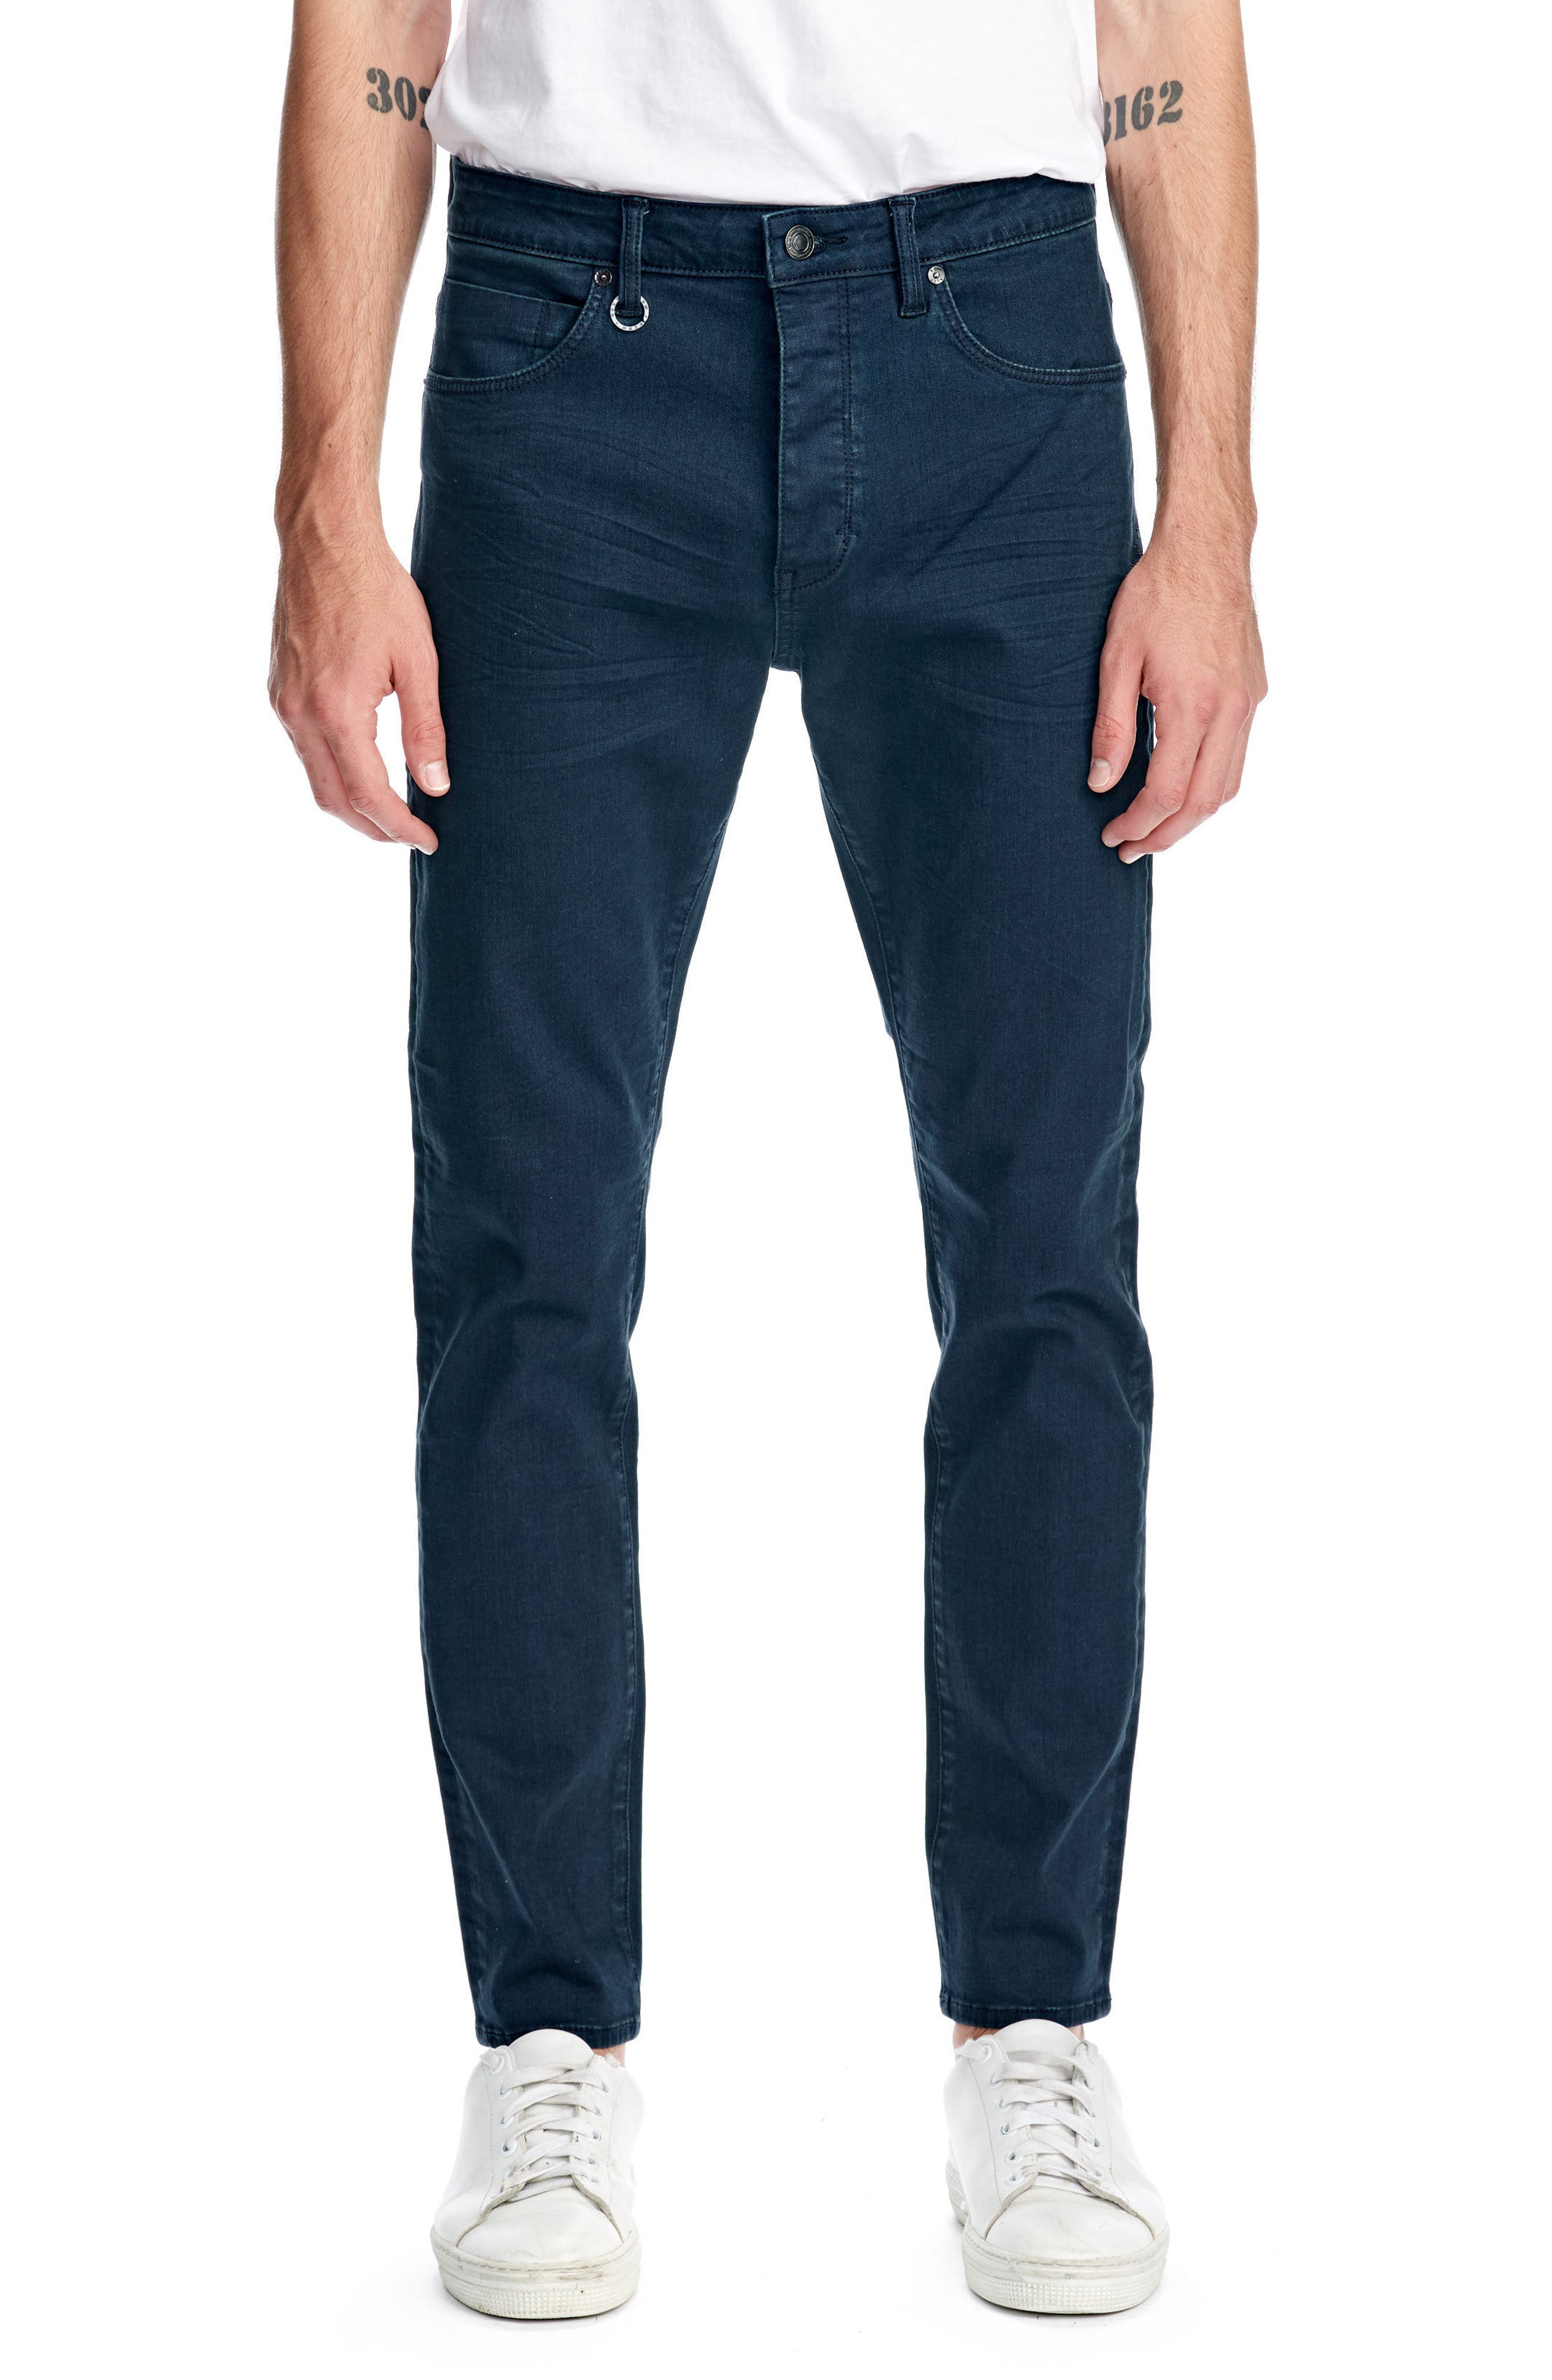 Ray Slim Fit Jeans,                             Main thumbnail 1, color,                             NORDIC BLUE